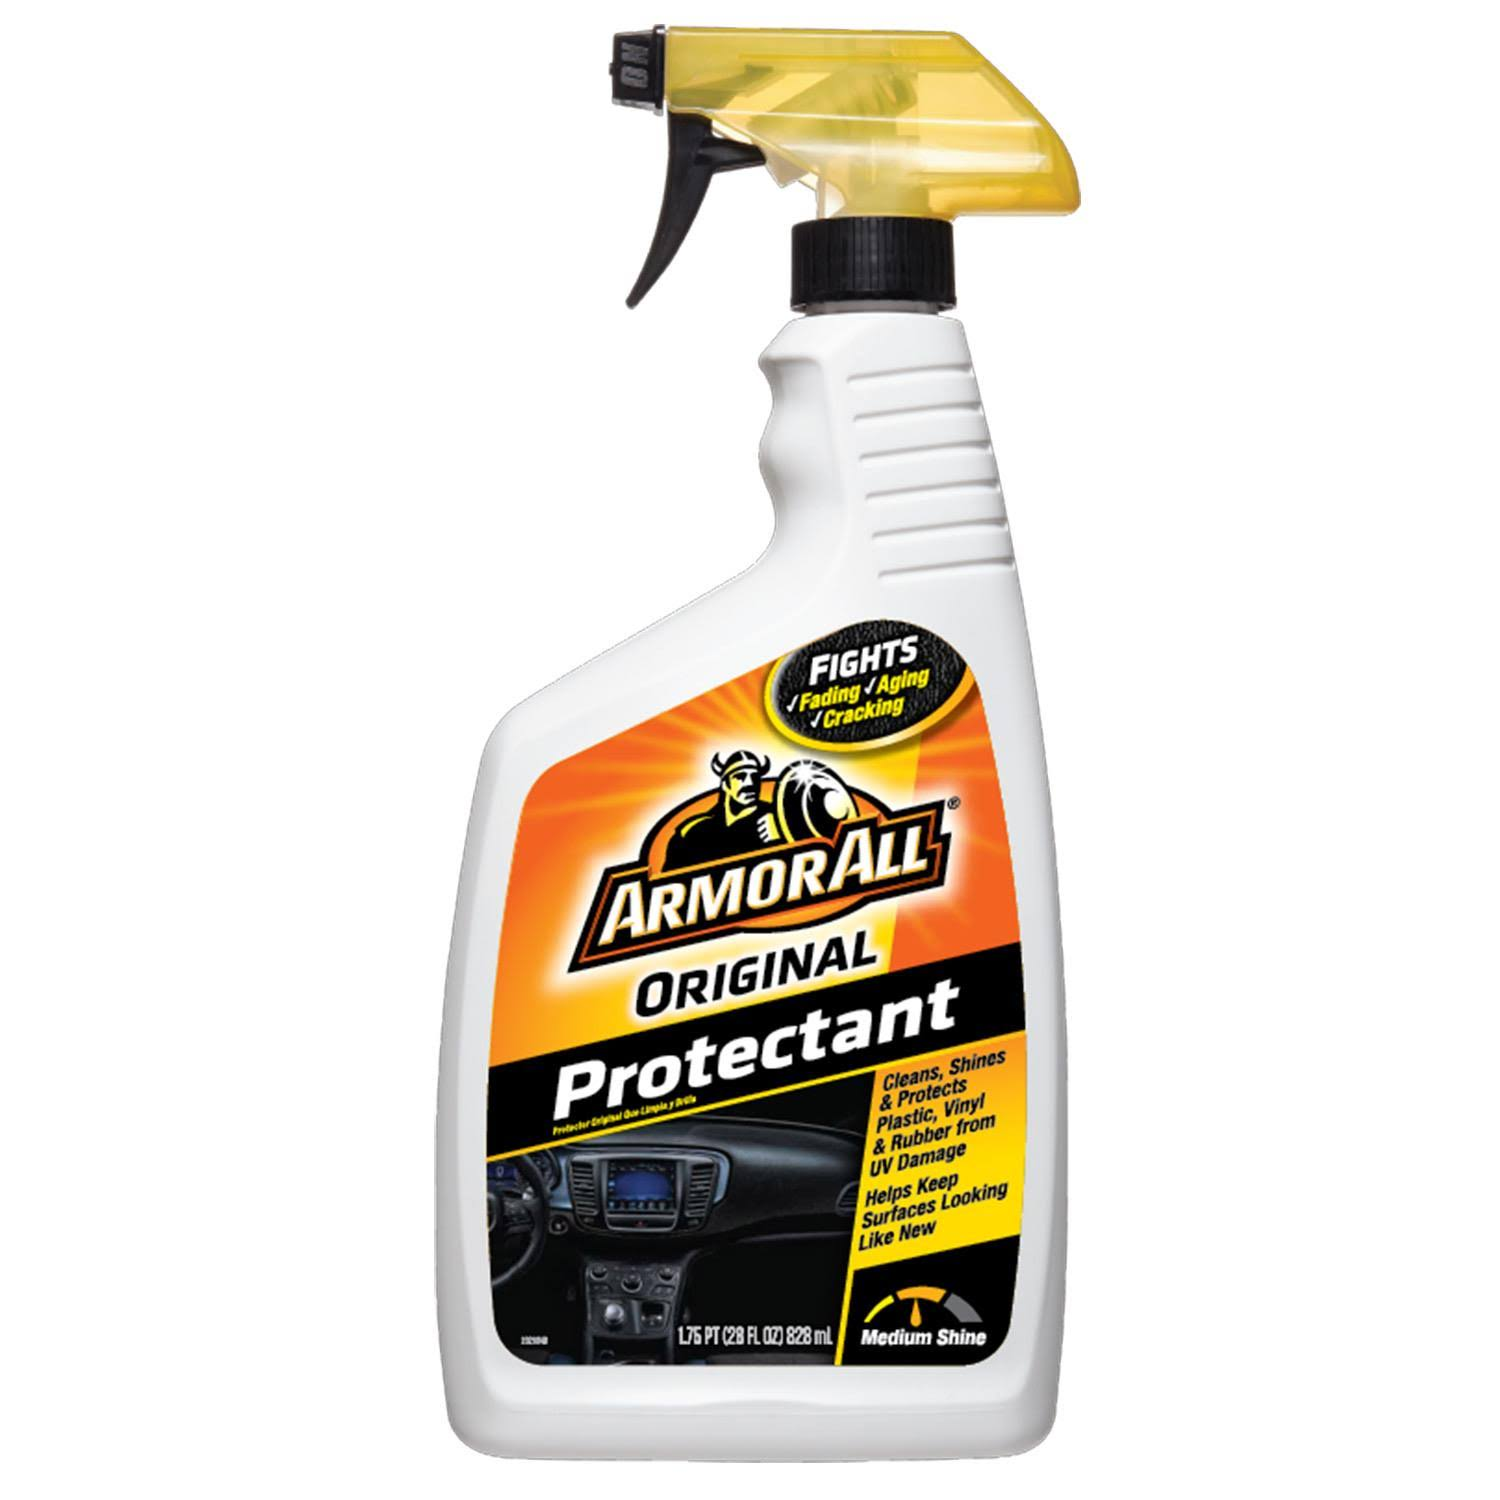 Clorox Armor All Original Protectant - 28oz